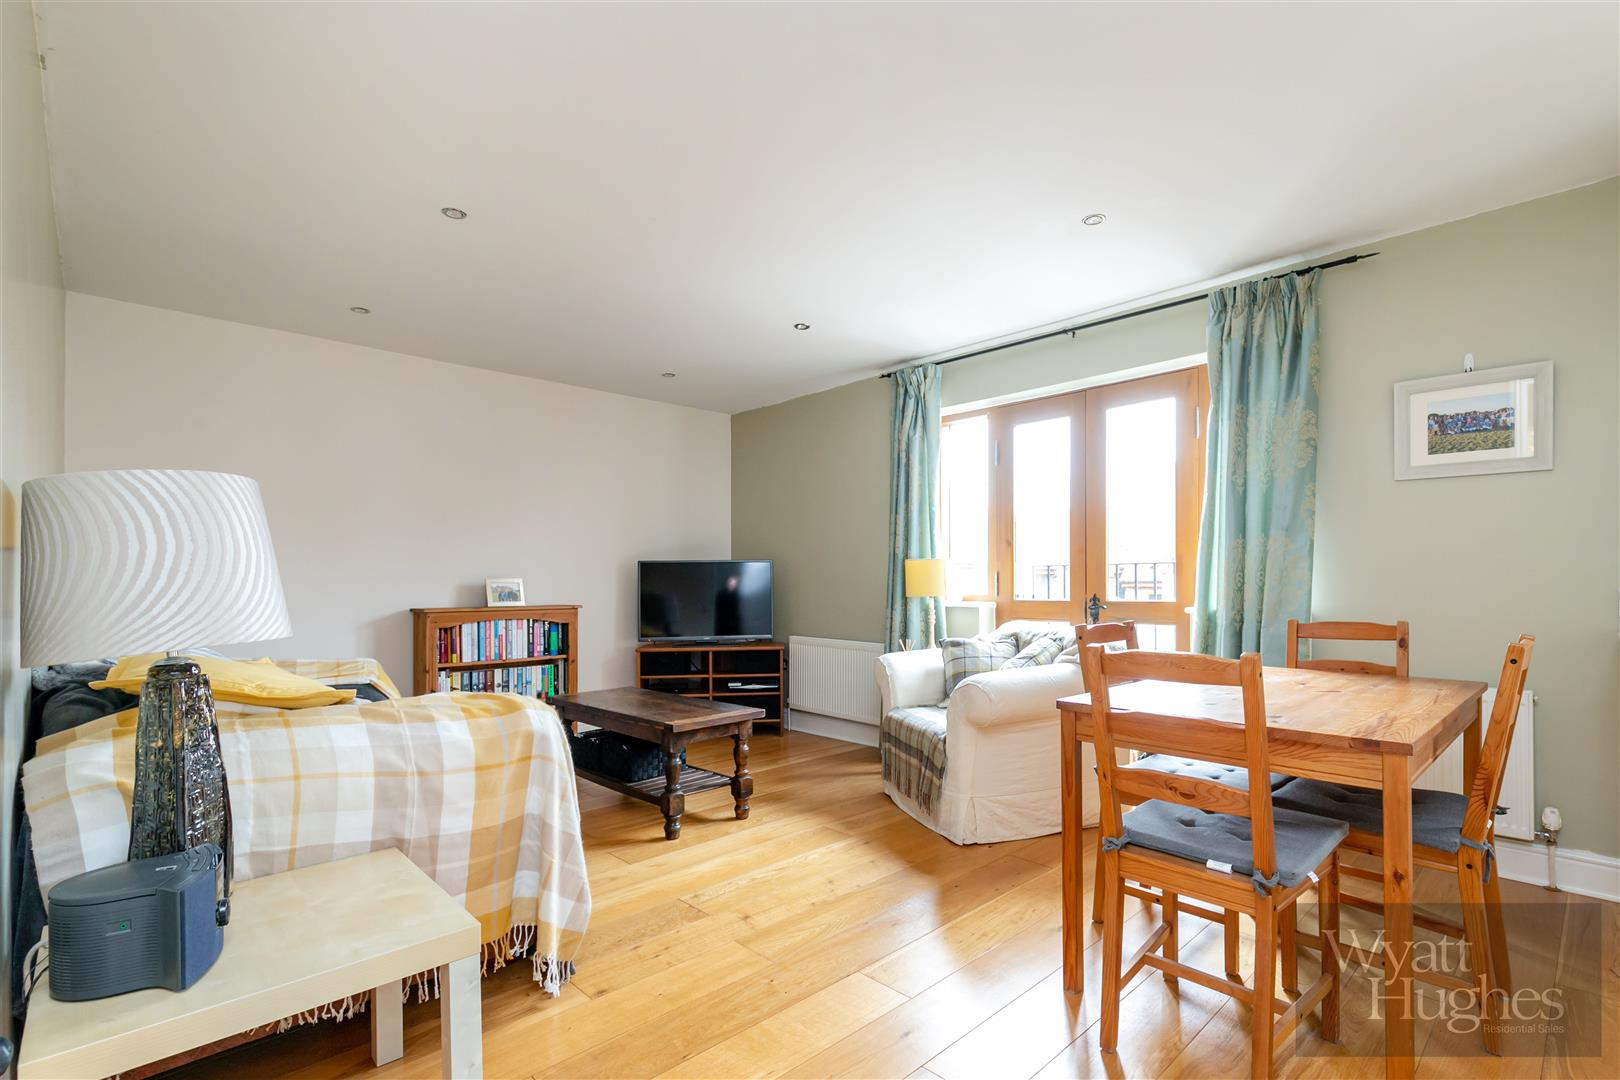 1 bed flat for sale in Colemans Way, Hurst Green  - Property Image 2